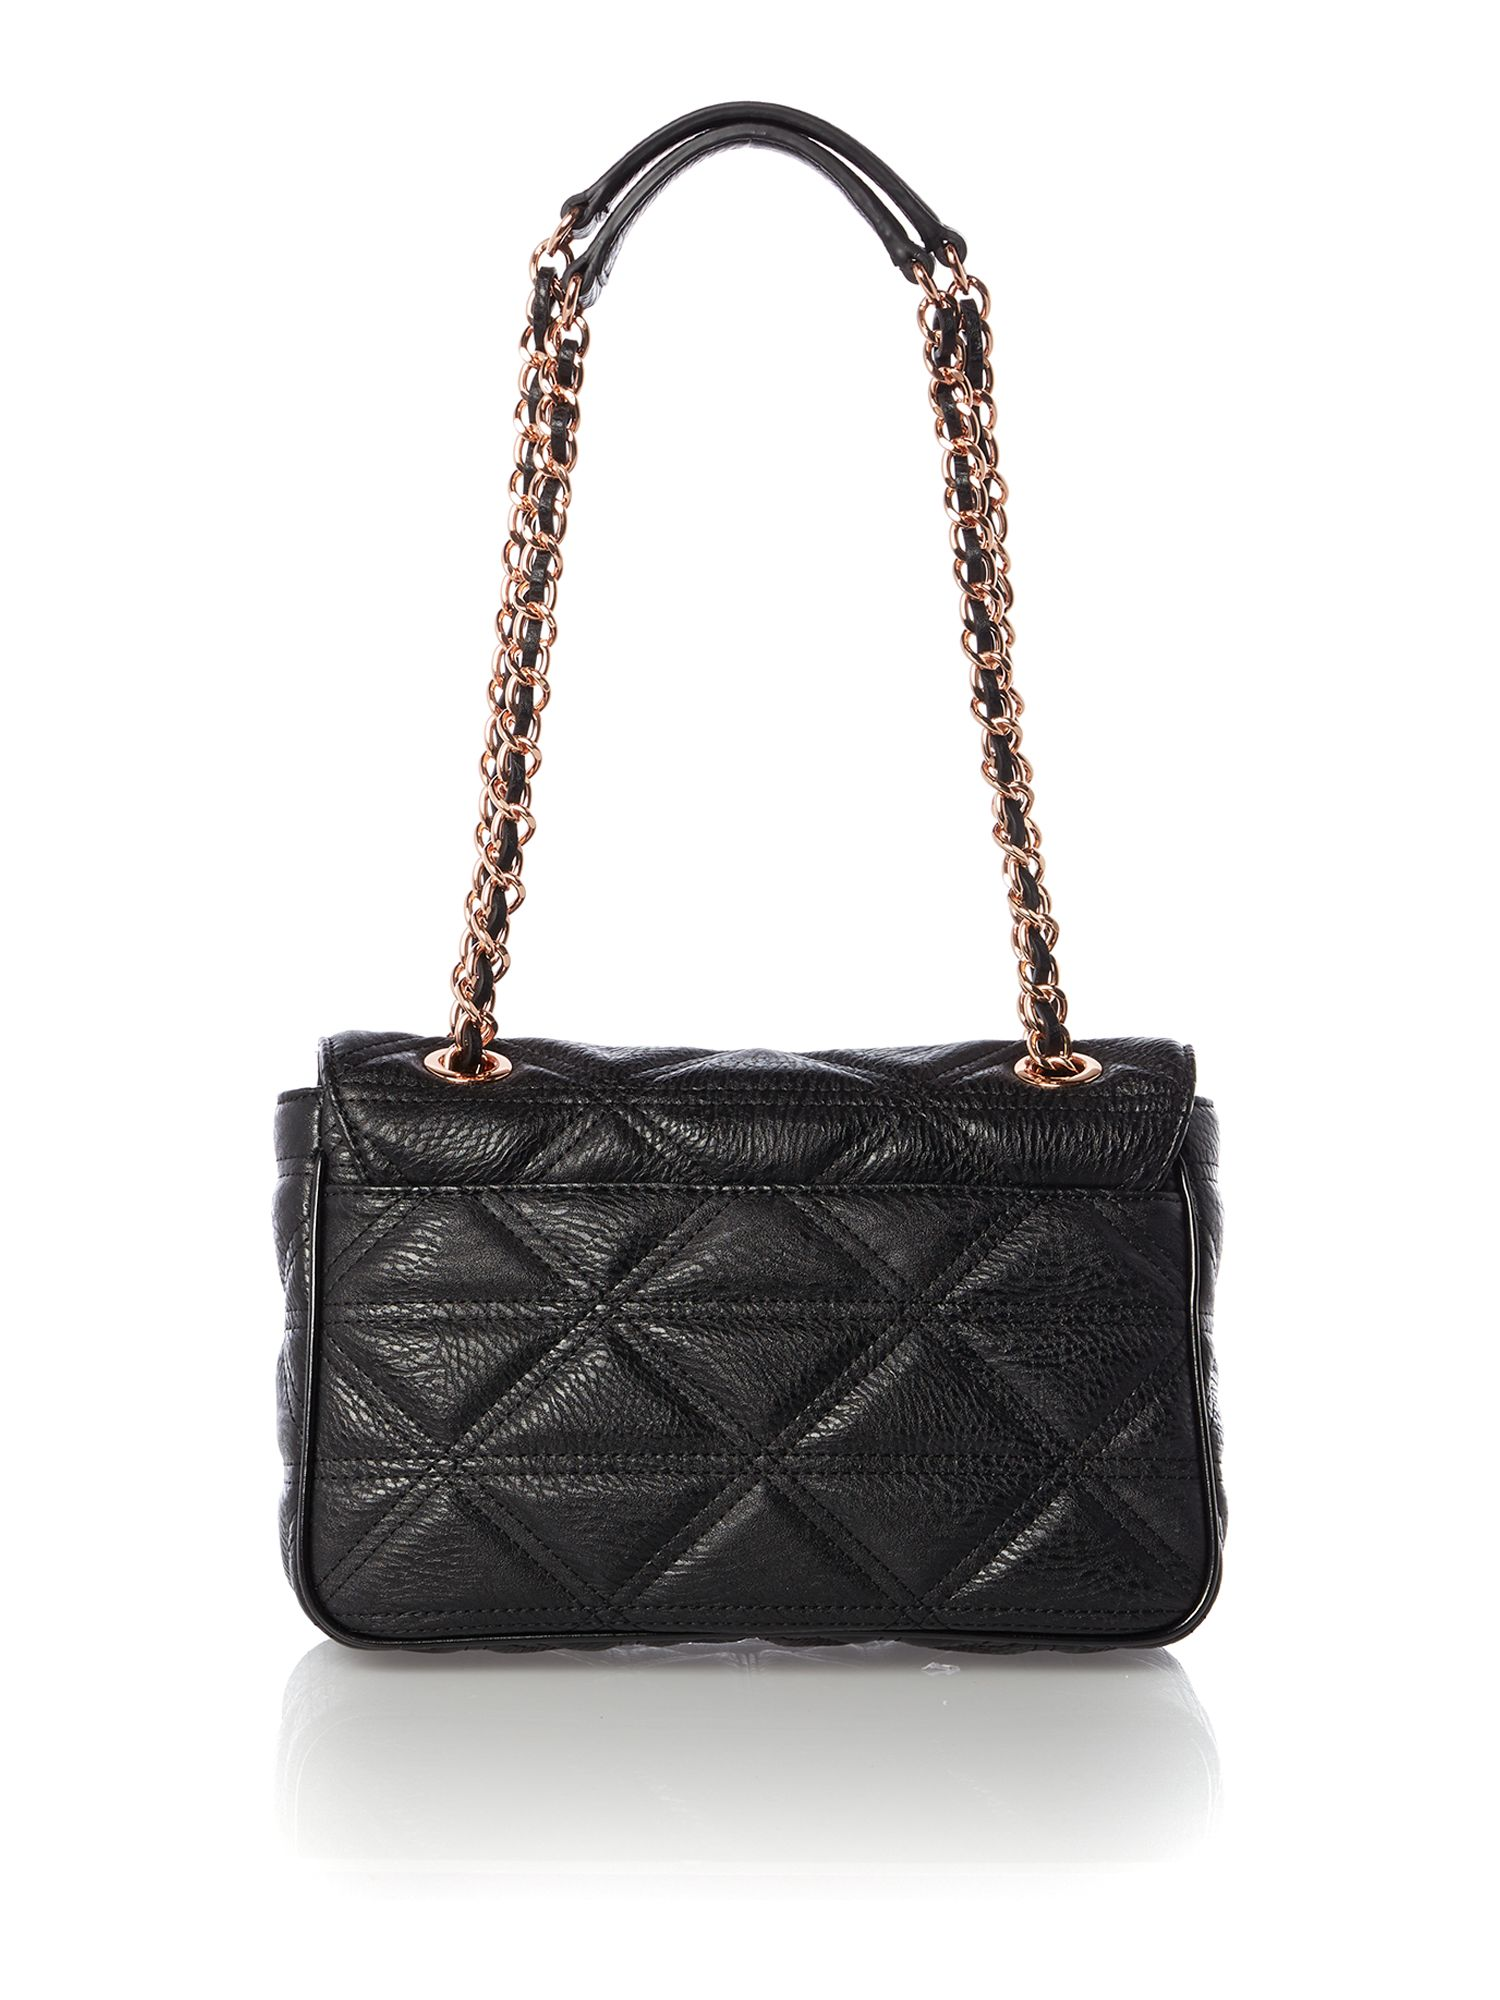 Sharlenemania black medium shoulder bag